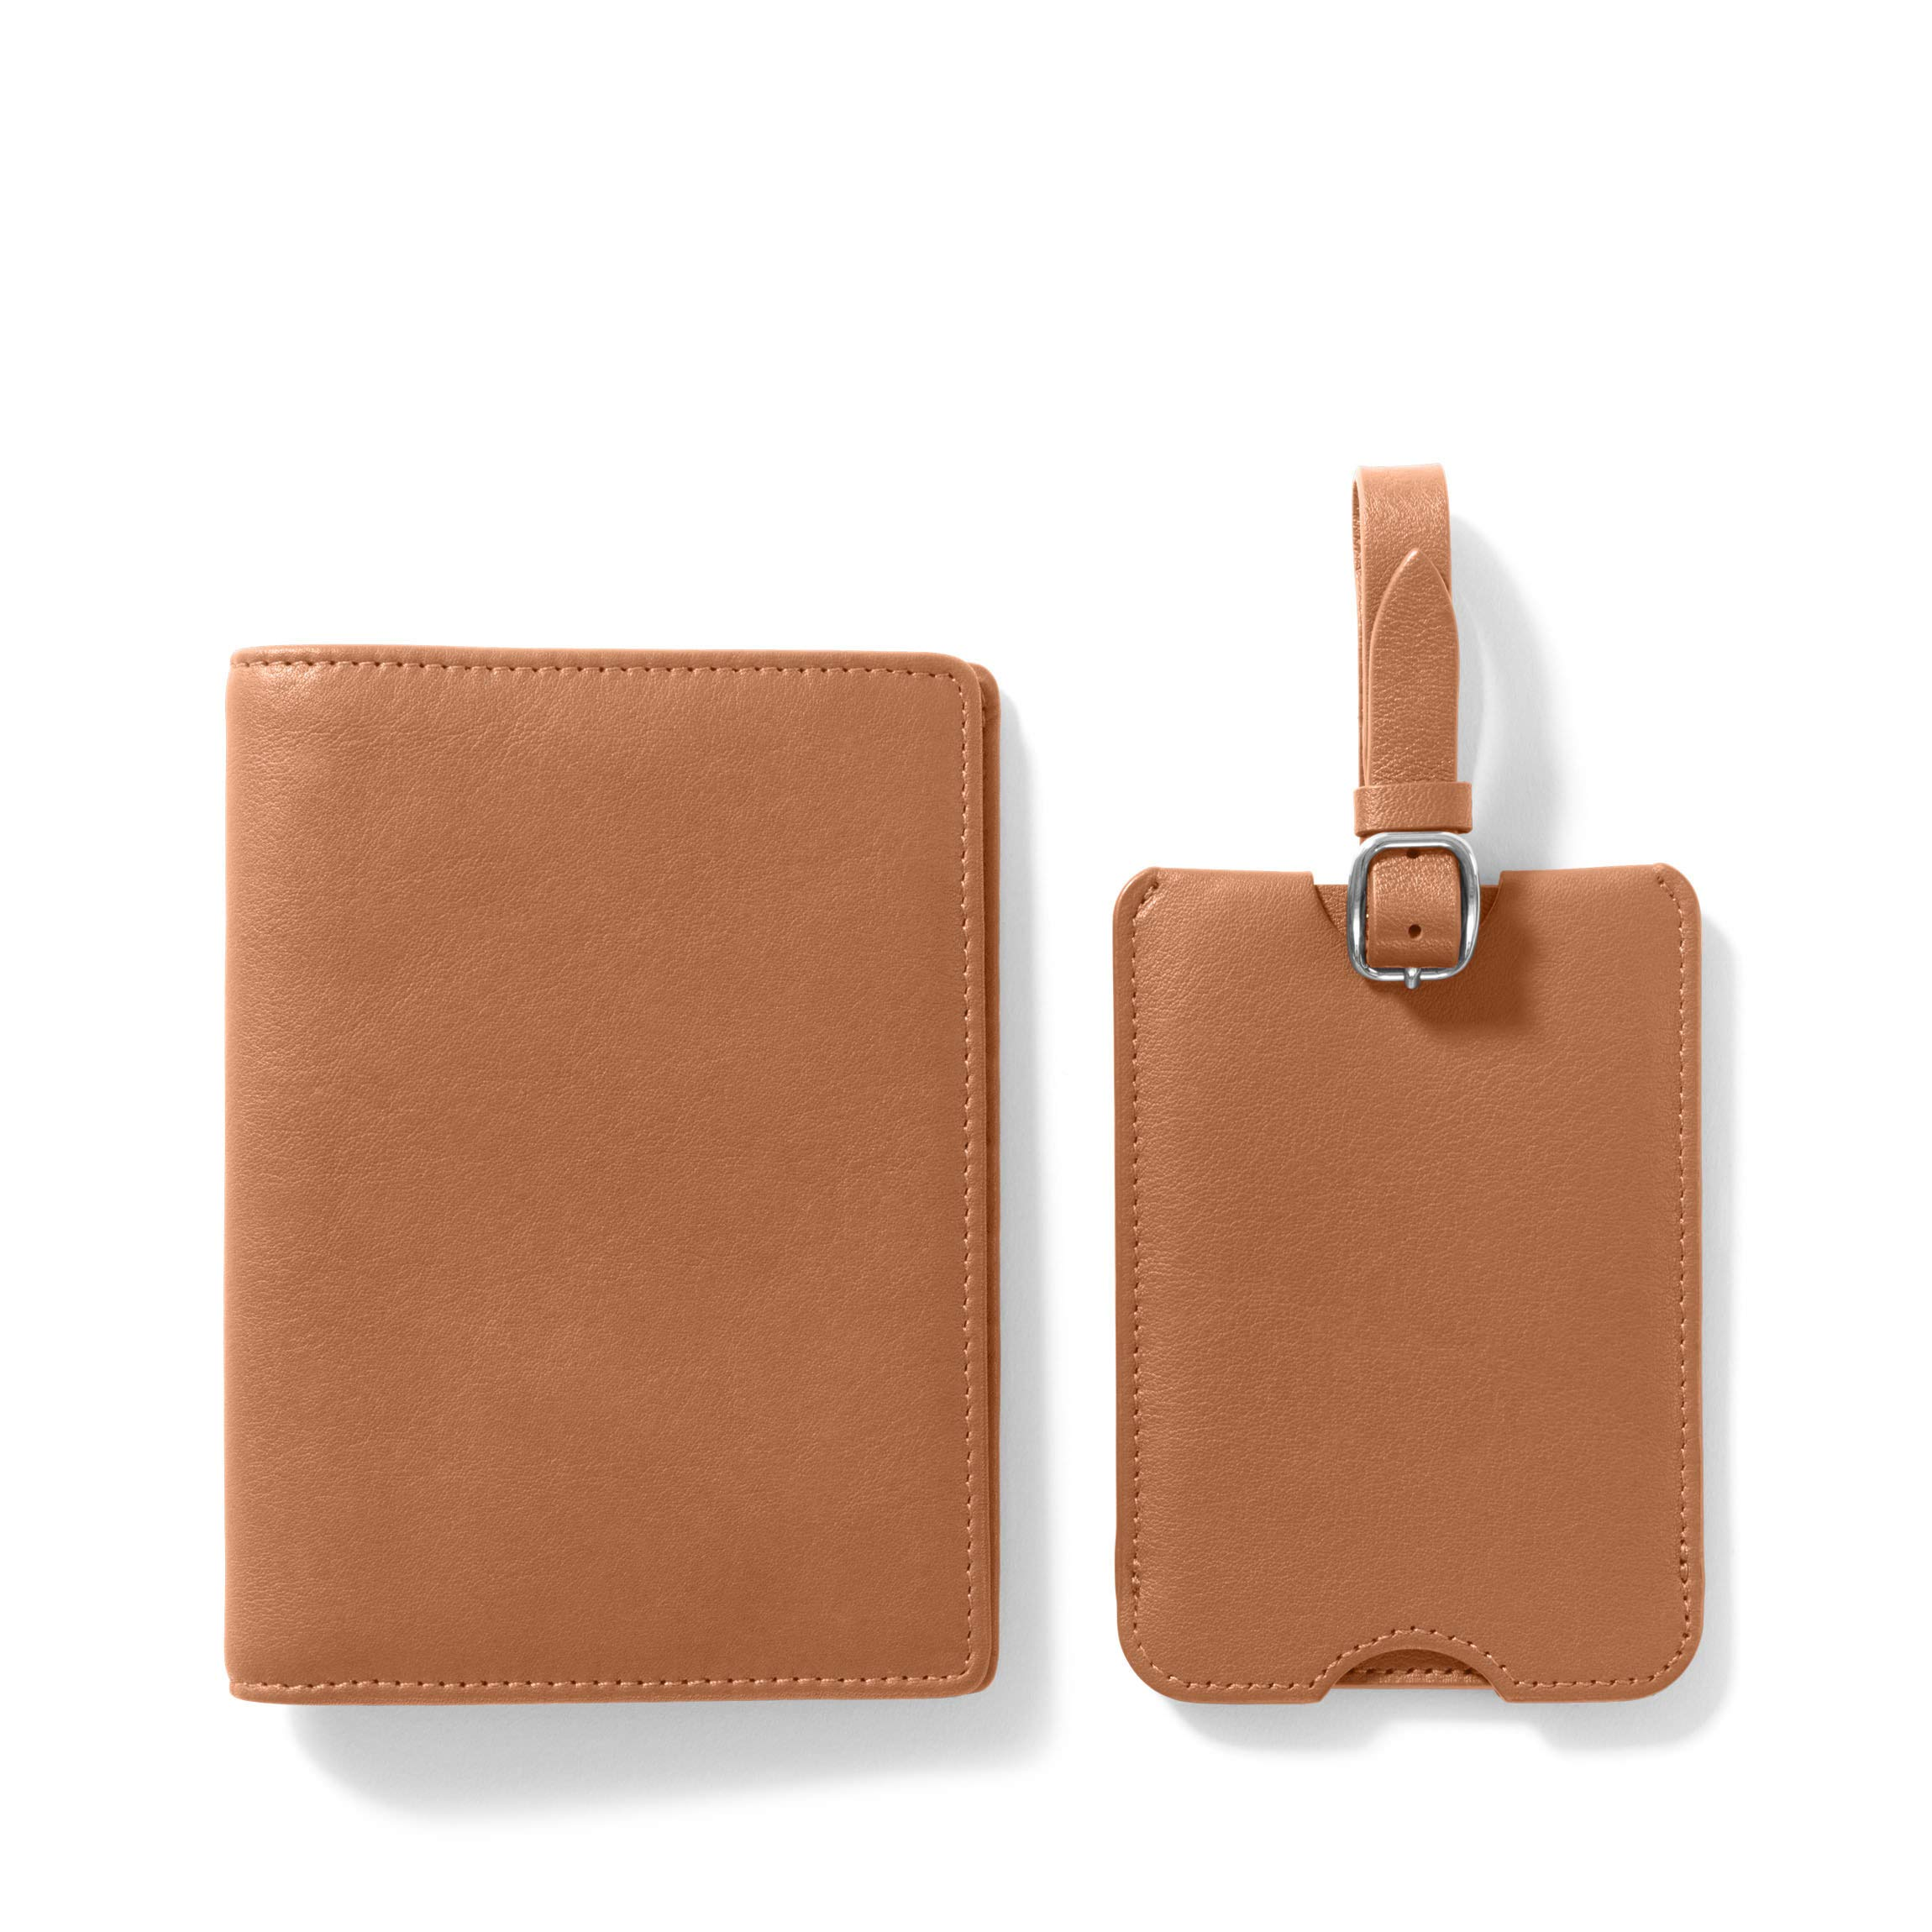 Deluxe Passport Cover + Luggage Tag Set - Full Grain Leather - Cognac (brown)